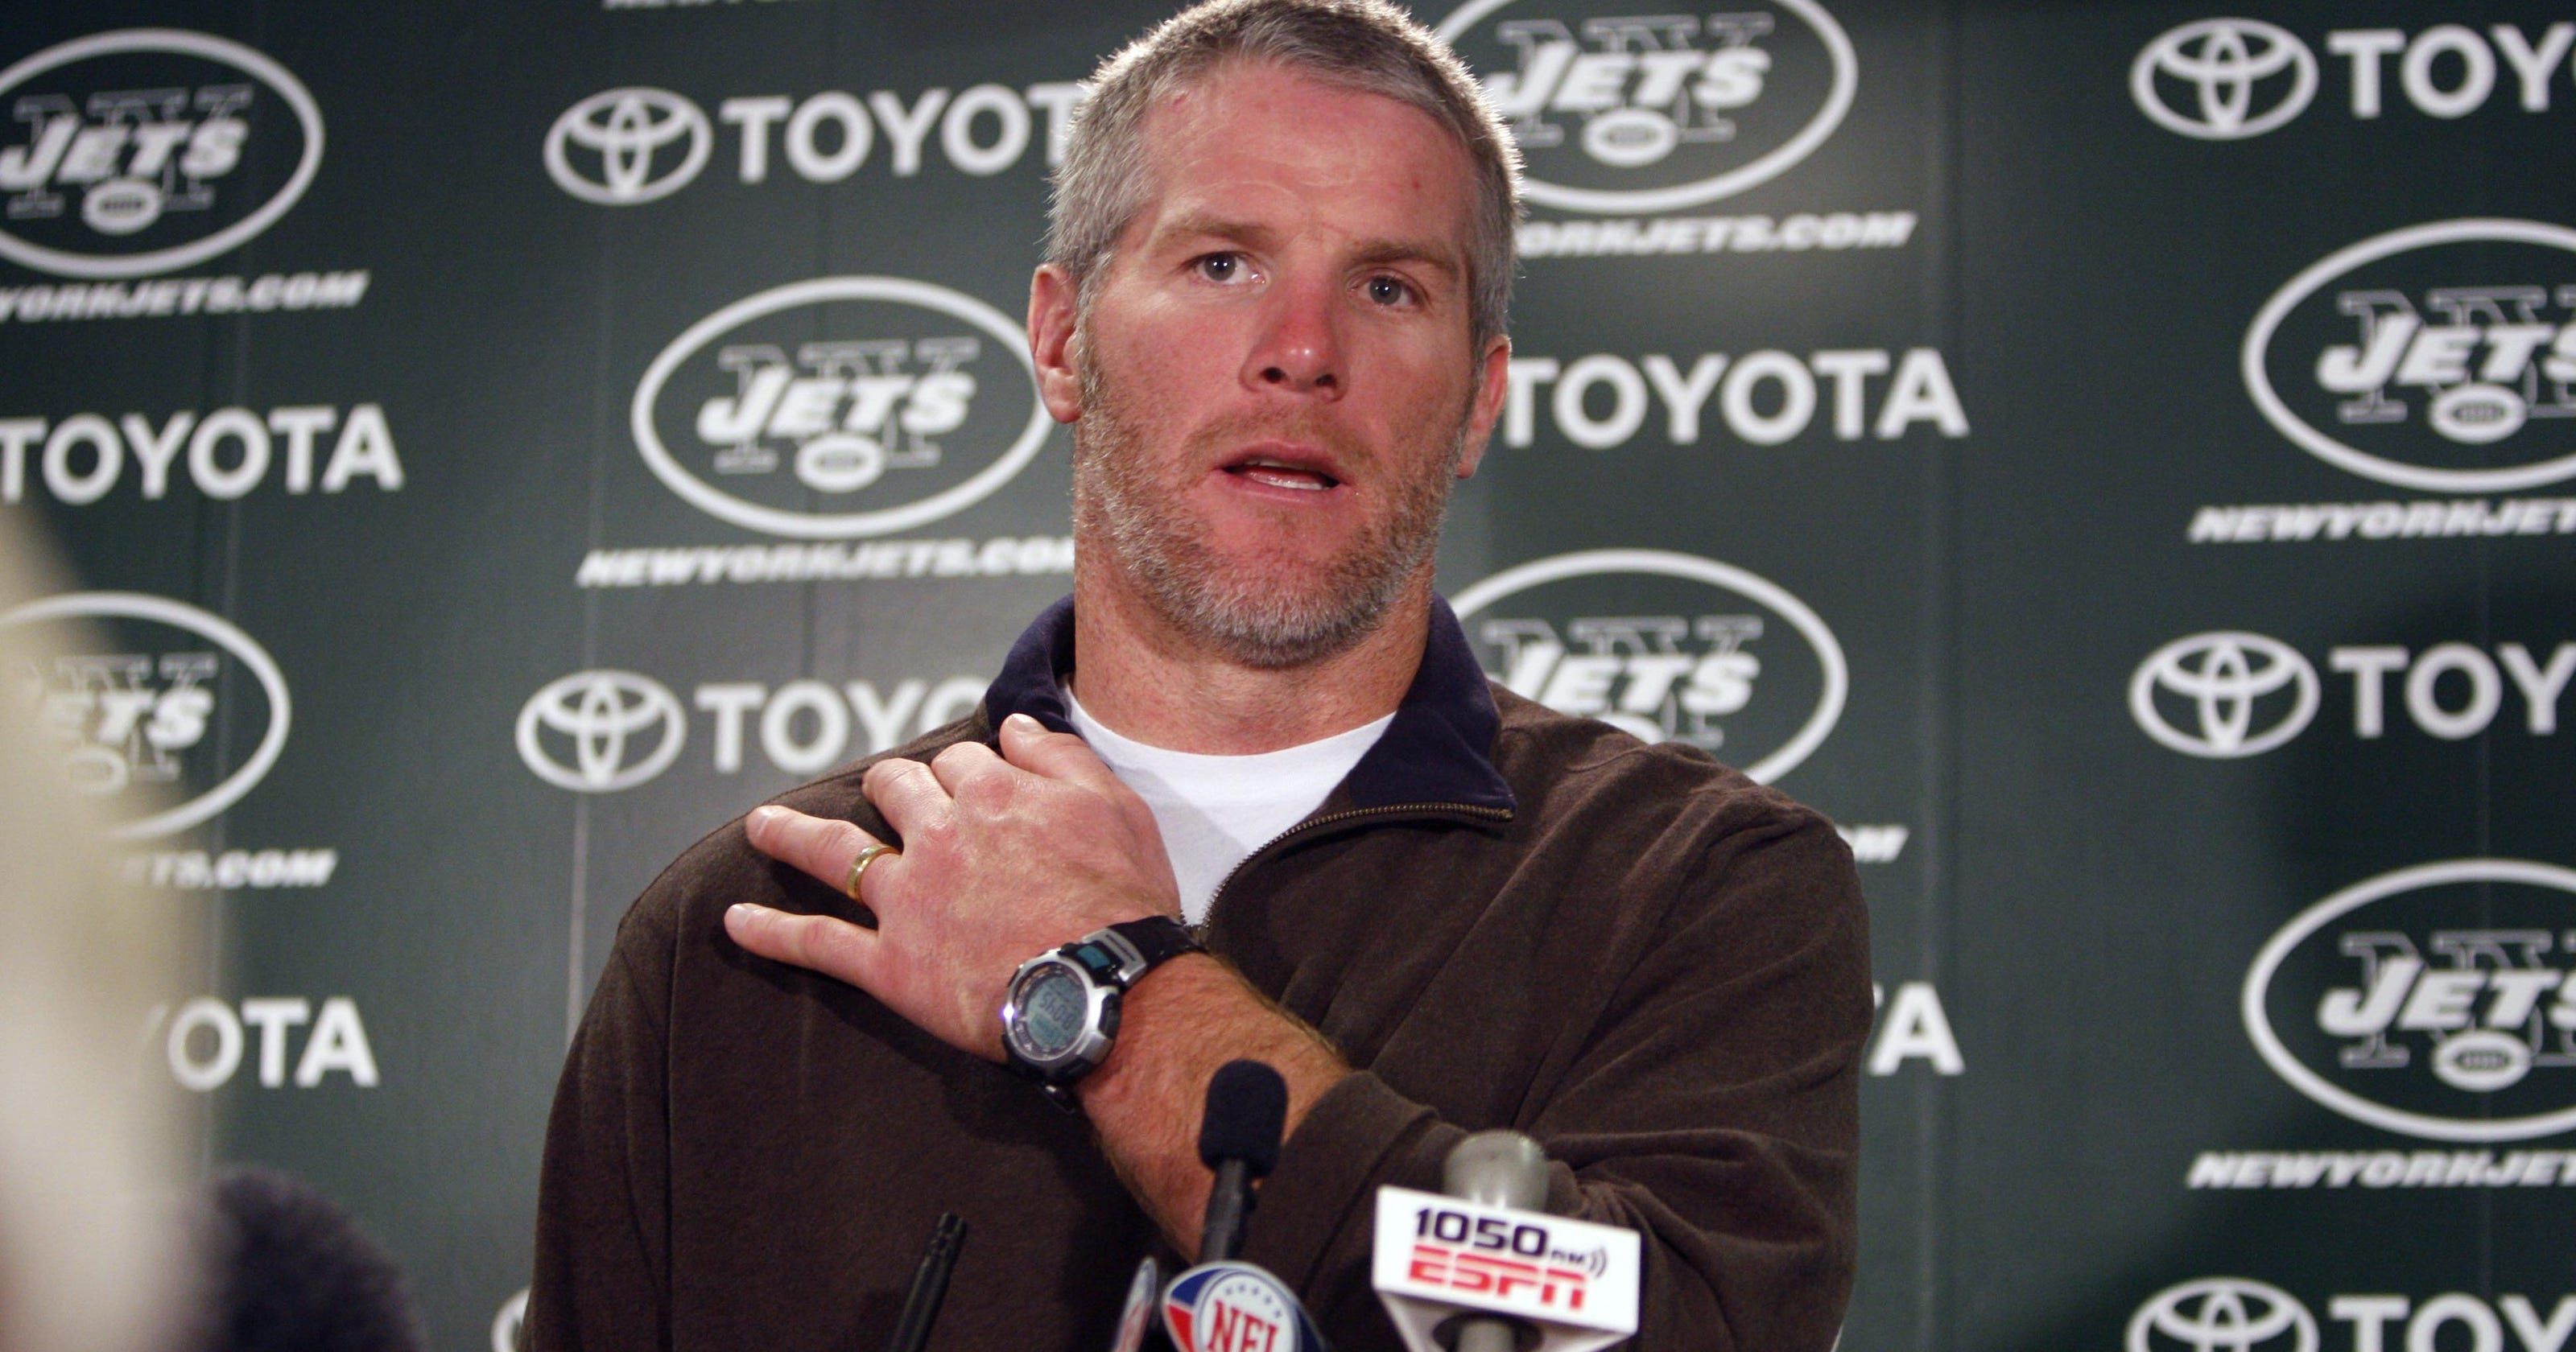 Brett Favre says Colin Kaepernick to be treated as hero like Pat Tillman, deserves to play